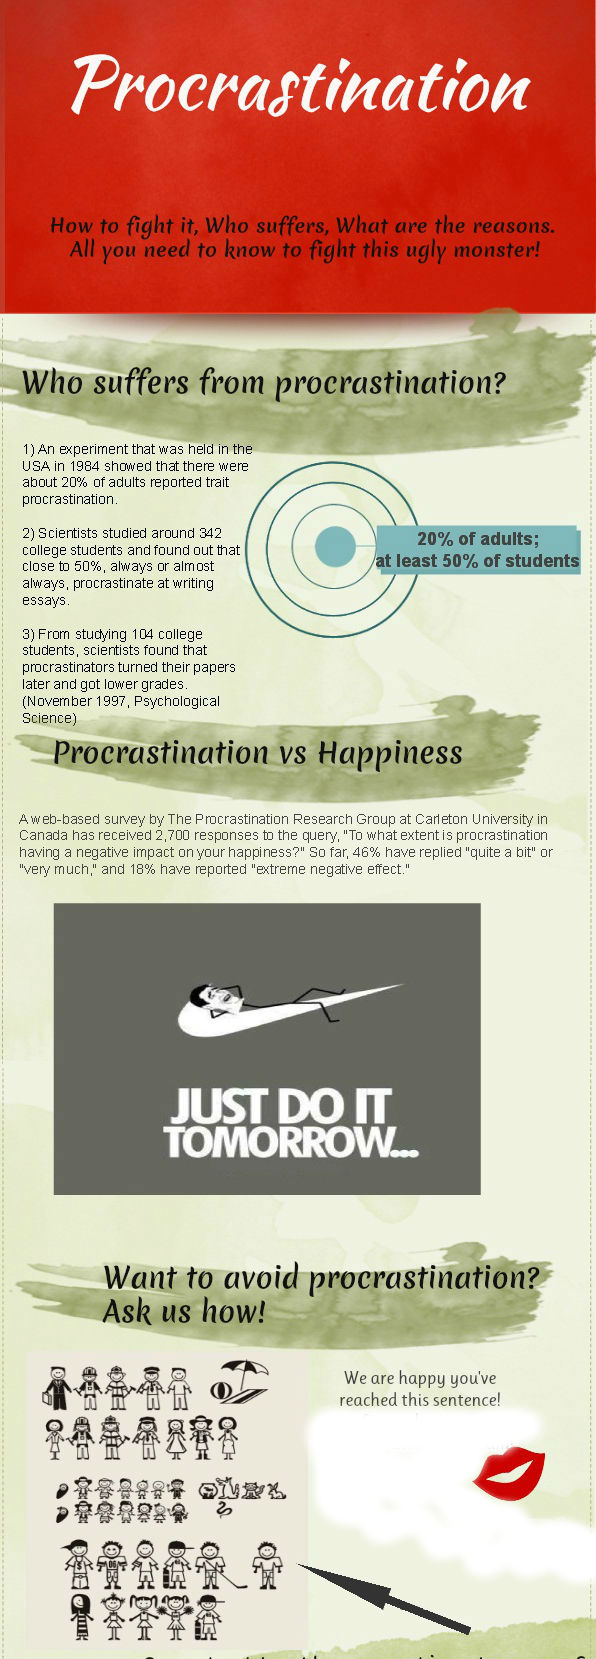 procrastination essay writing Follow these tips to avoid falling into the procrastination doom loop while writing your college admissions essays.